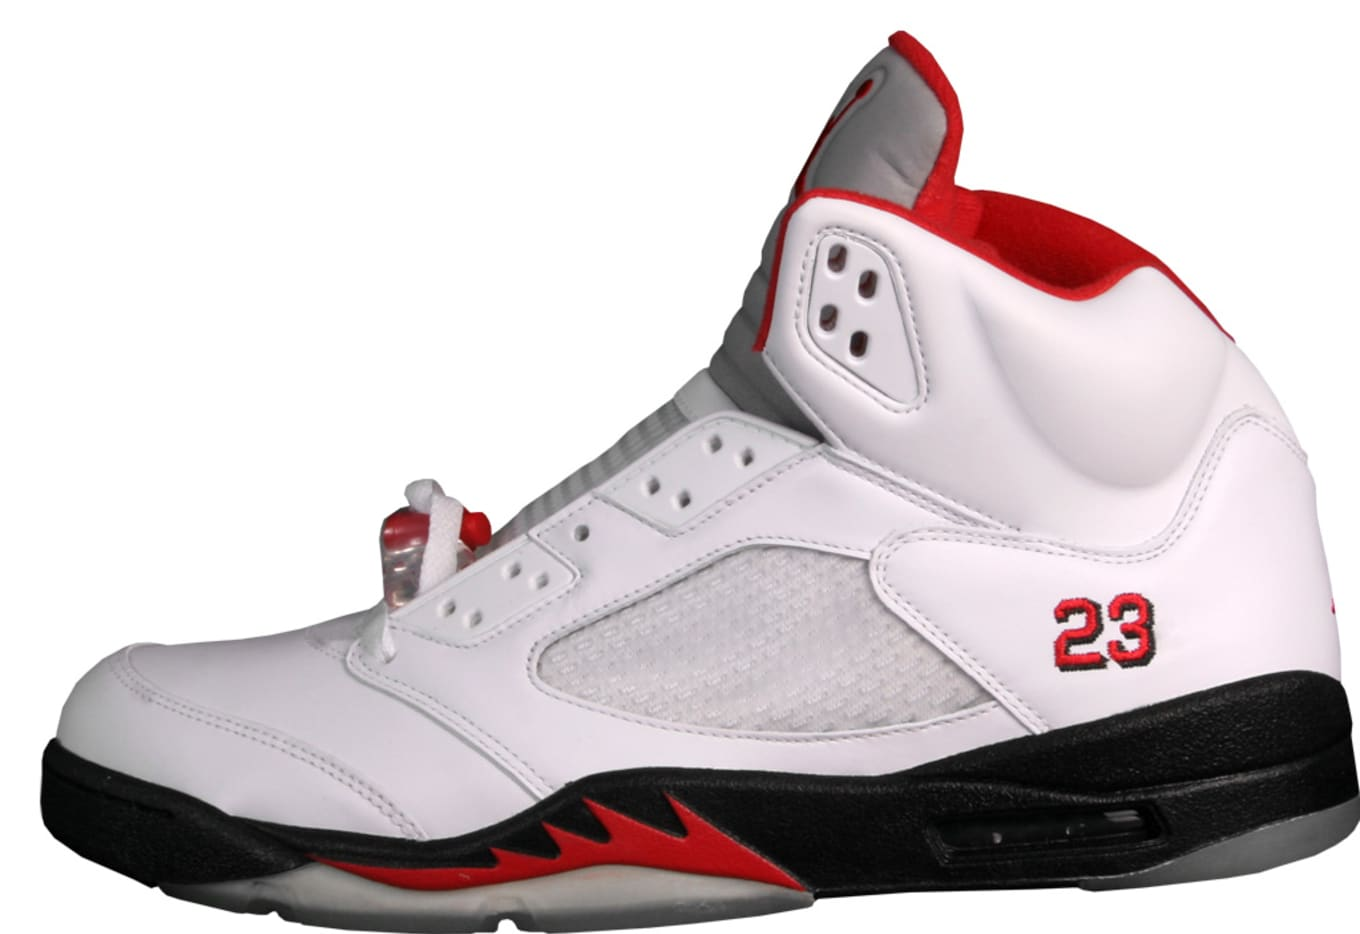 3873974657d6 Air Jordan 5 Retro Collezione  CDP . Colorway  White Fire Red-Black Release  Date  08 23 2008. Original Price   310. Average Resell Value   265